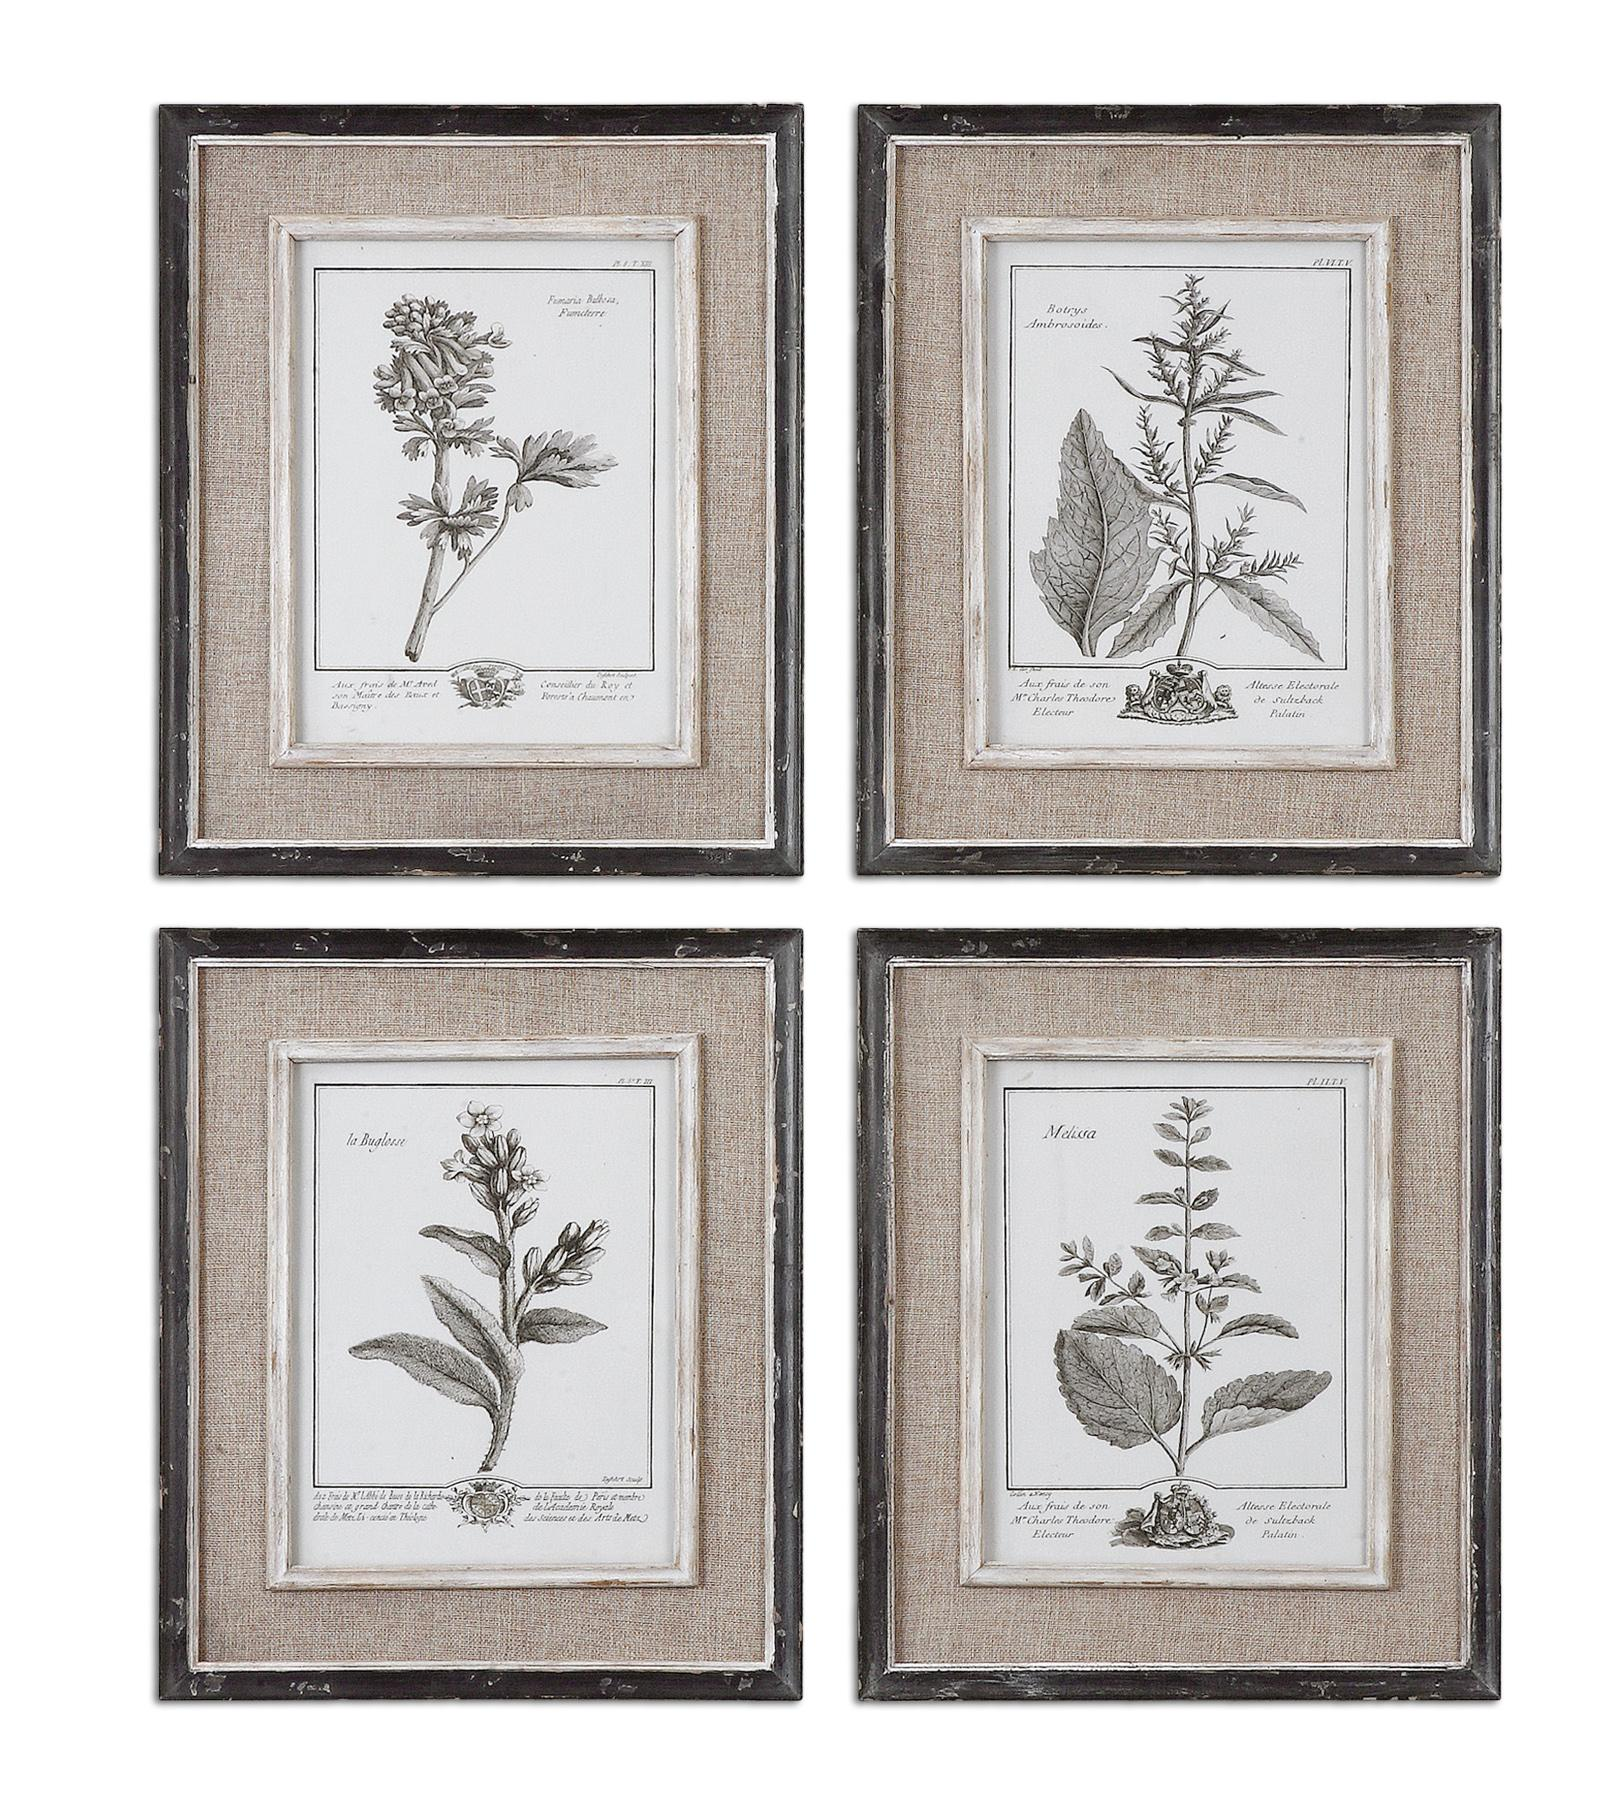 Framed Prints Casual Grey Study Framed Prints, S/4 by Uttermost at Michael Alan Furniture & Design